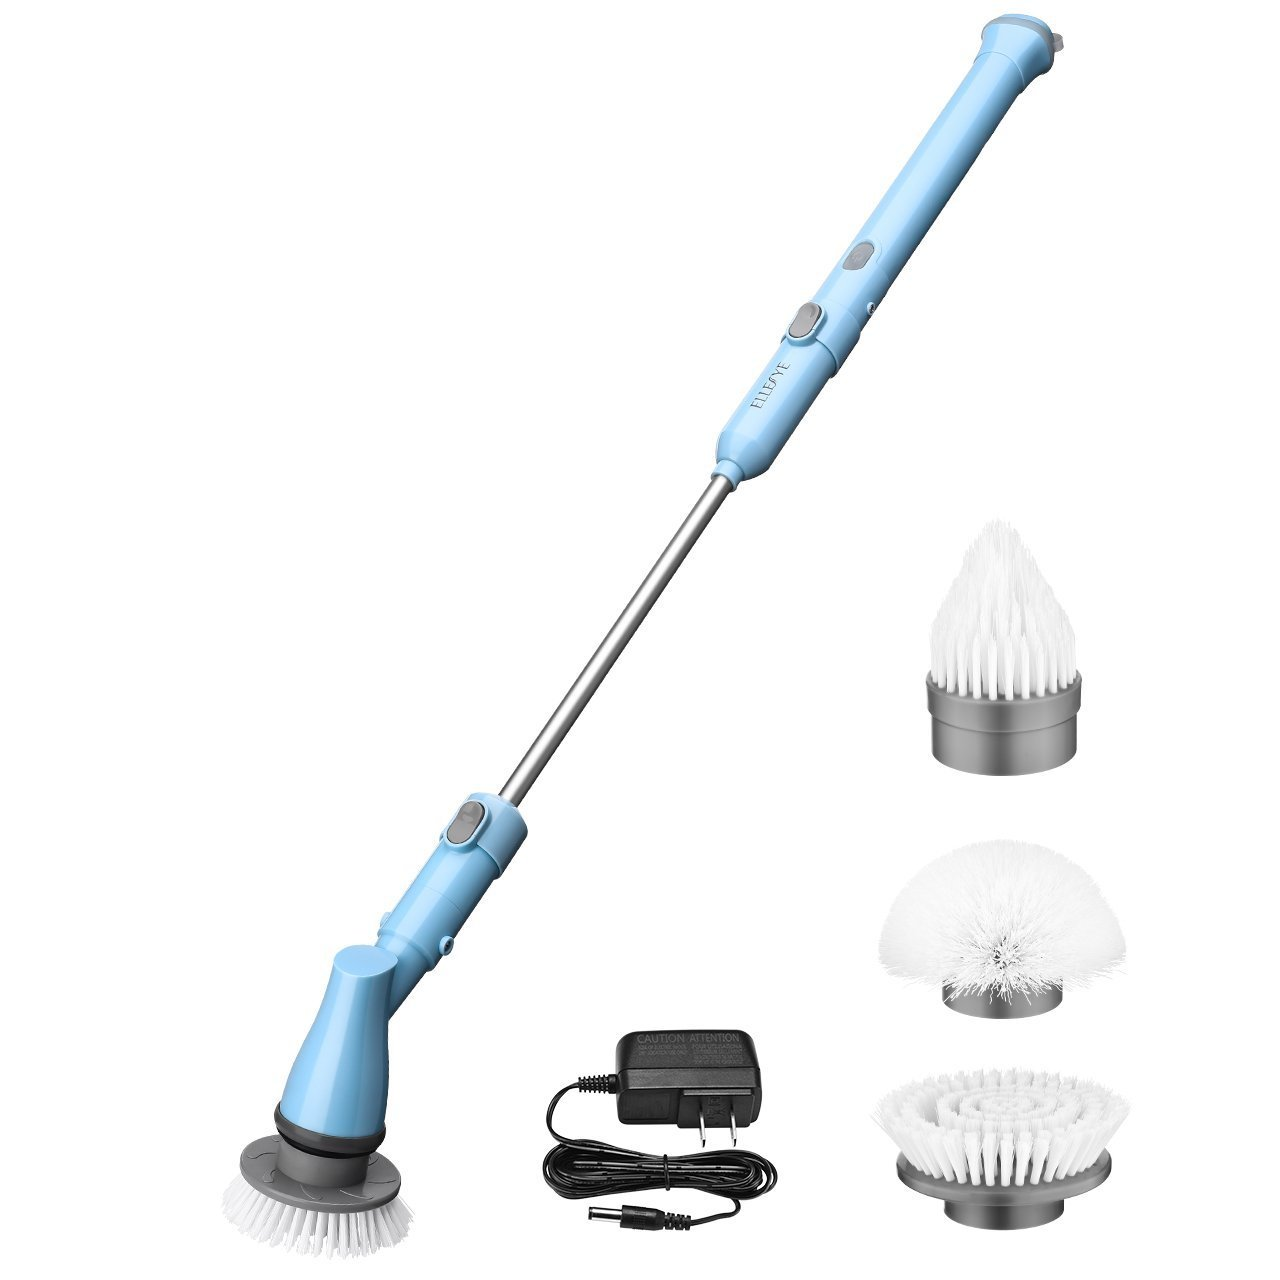 Spin Scrubber, Habor Cordless Power Scrubber, 360° Electric Spin Window Scrubber with 3 Replaceable Cleaning Scrubber Brushes for Shower, Tile, Floor, Wall, Kitchen and Hub